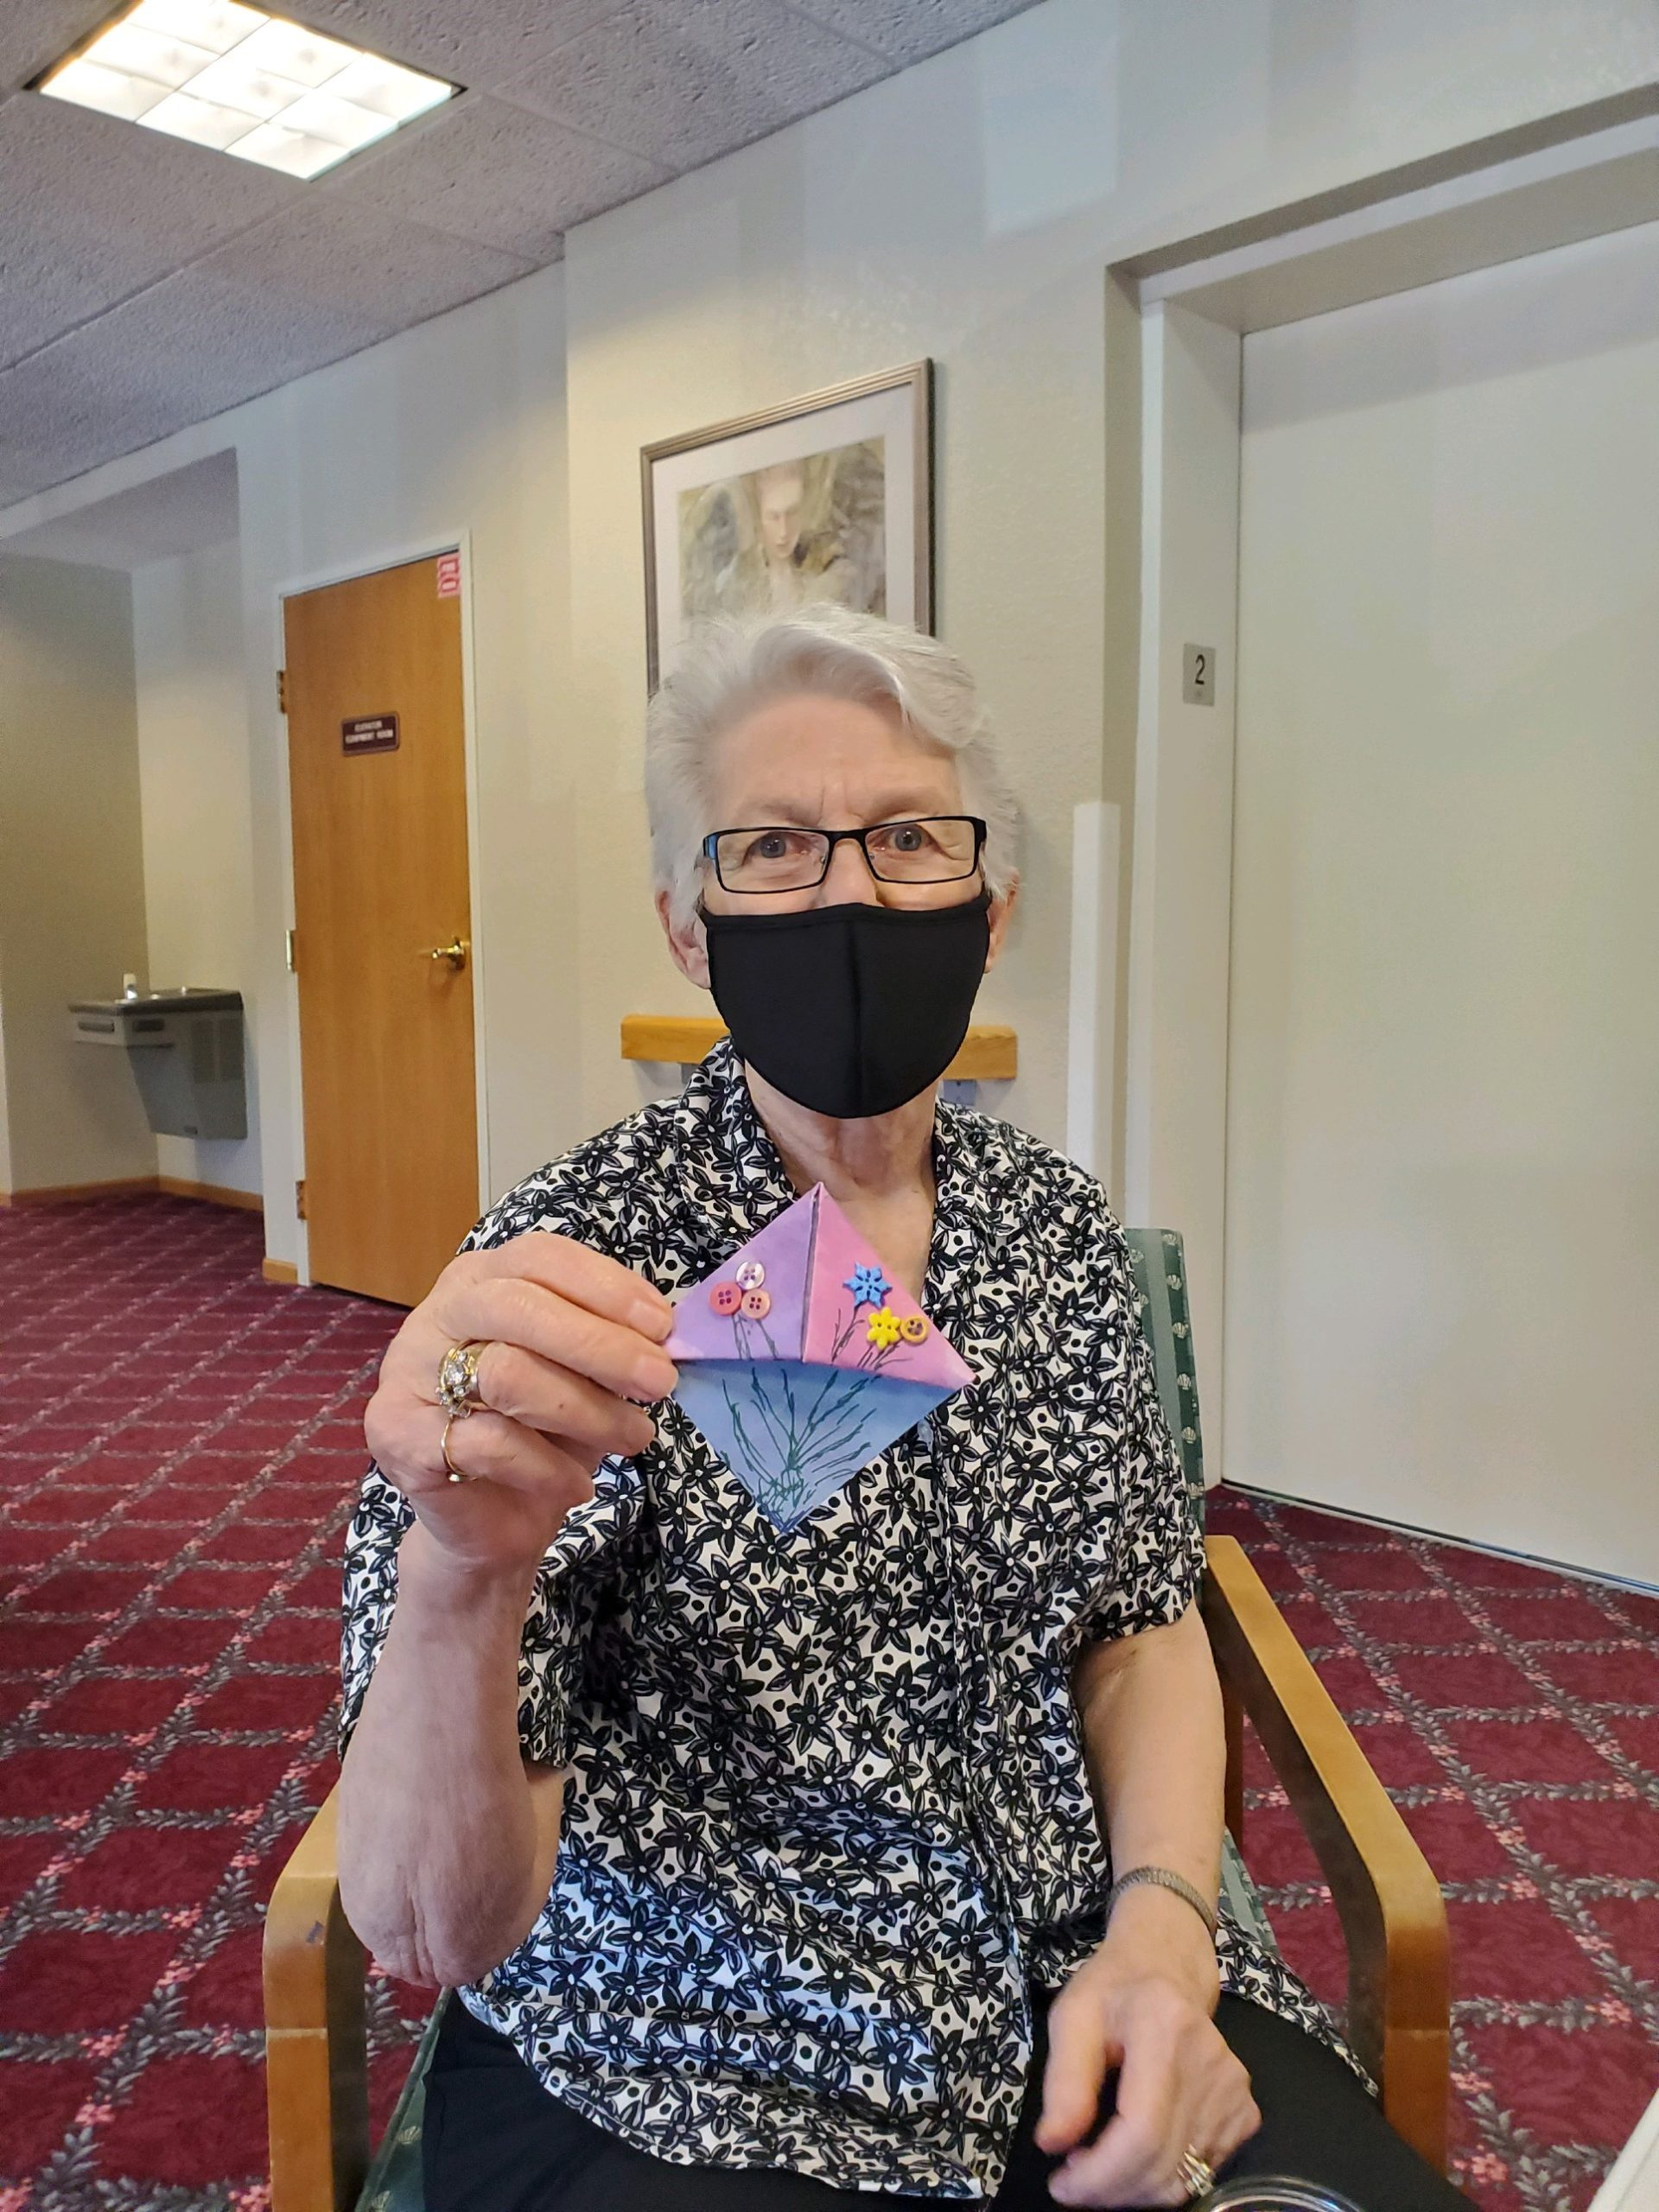 Mary attends many of our crafts and always has a unique way *typically very funny* of showing it off!